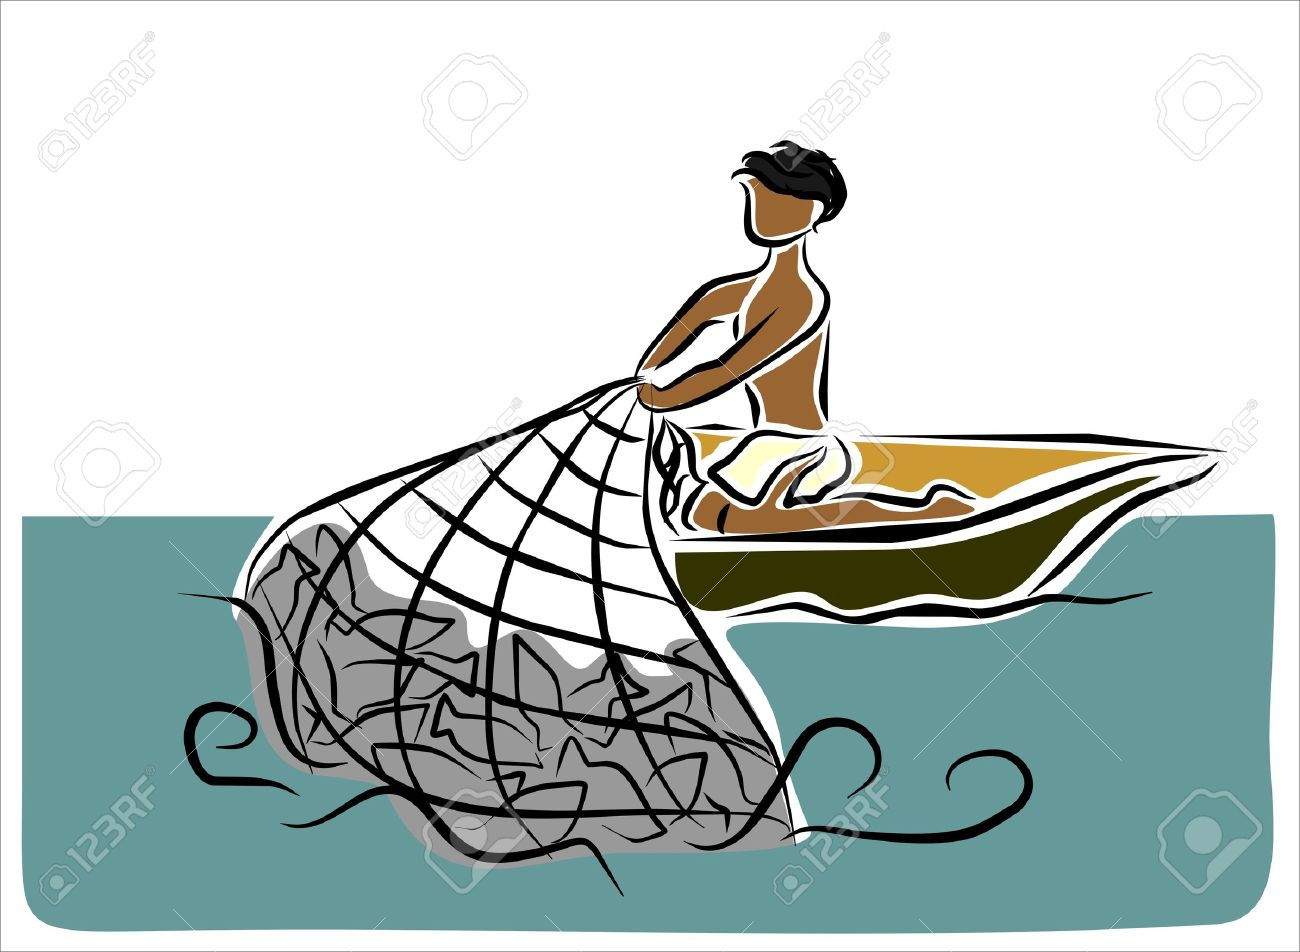 Fisherman Clipart Free Download Best Fisherman Clipart On